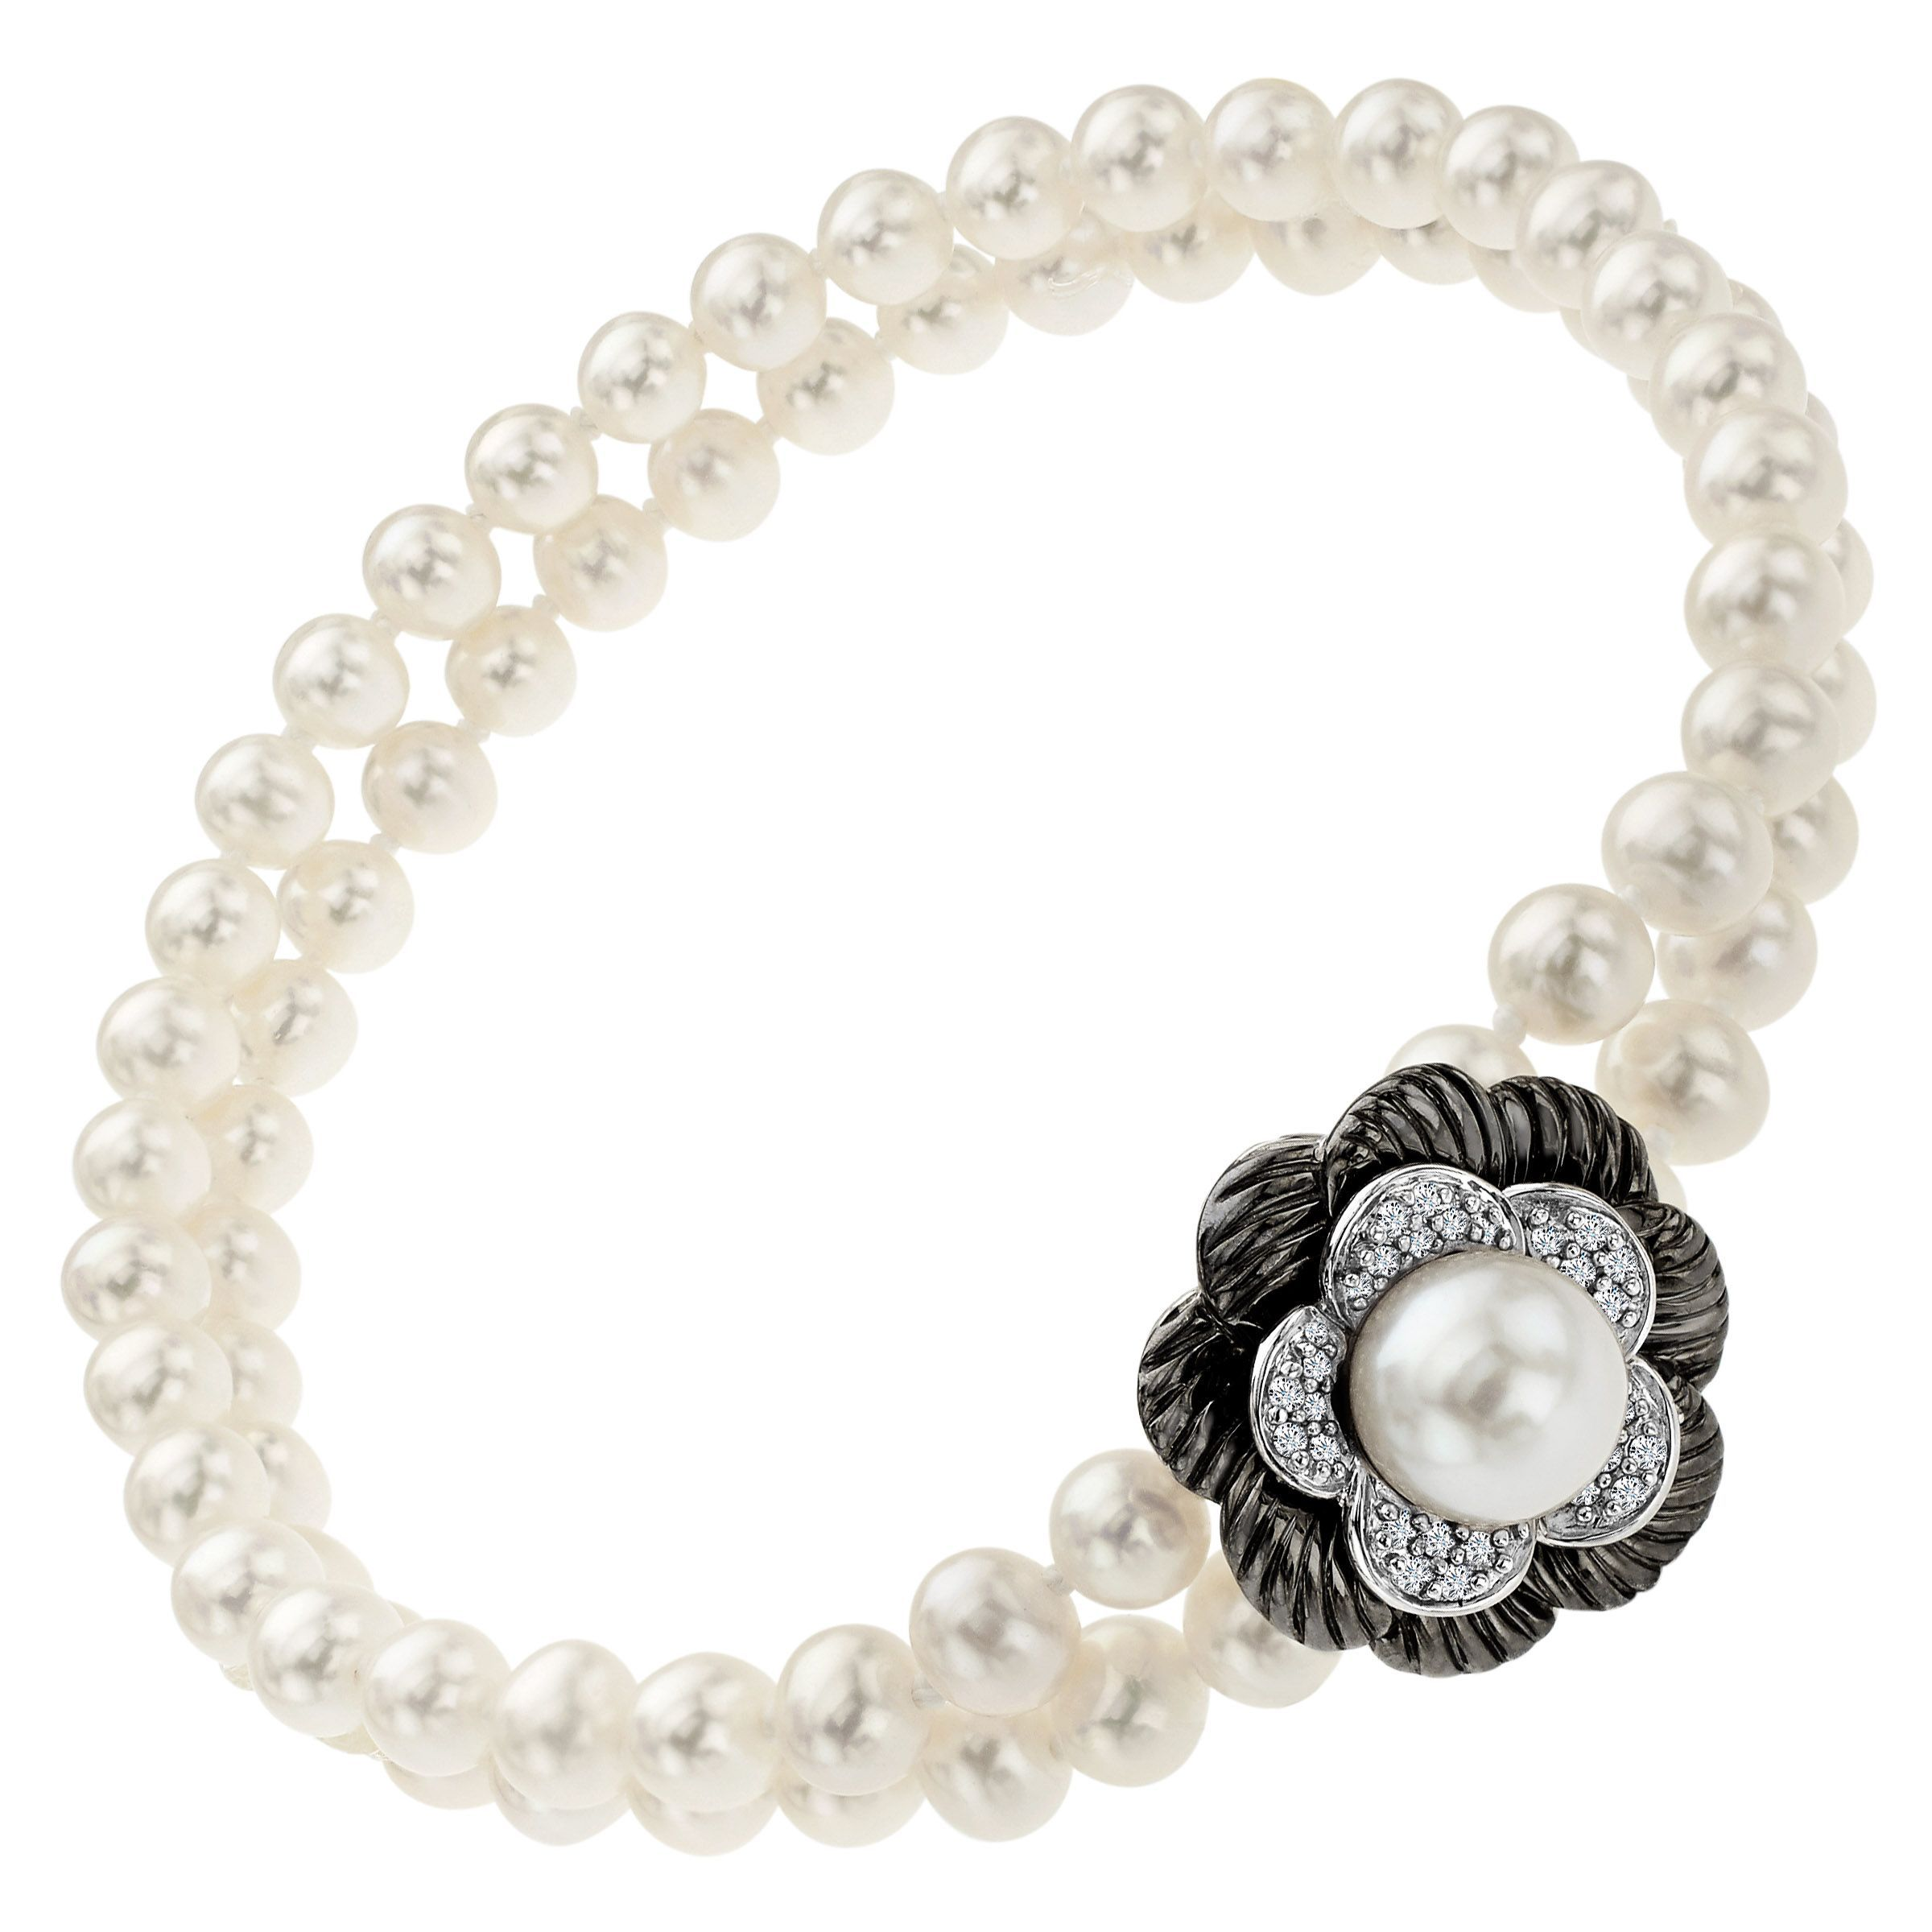 jewelry pearls freshwater free today of cascades thailand handmade necklace product overstock shipping classy watches